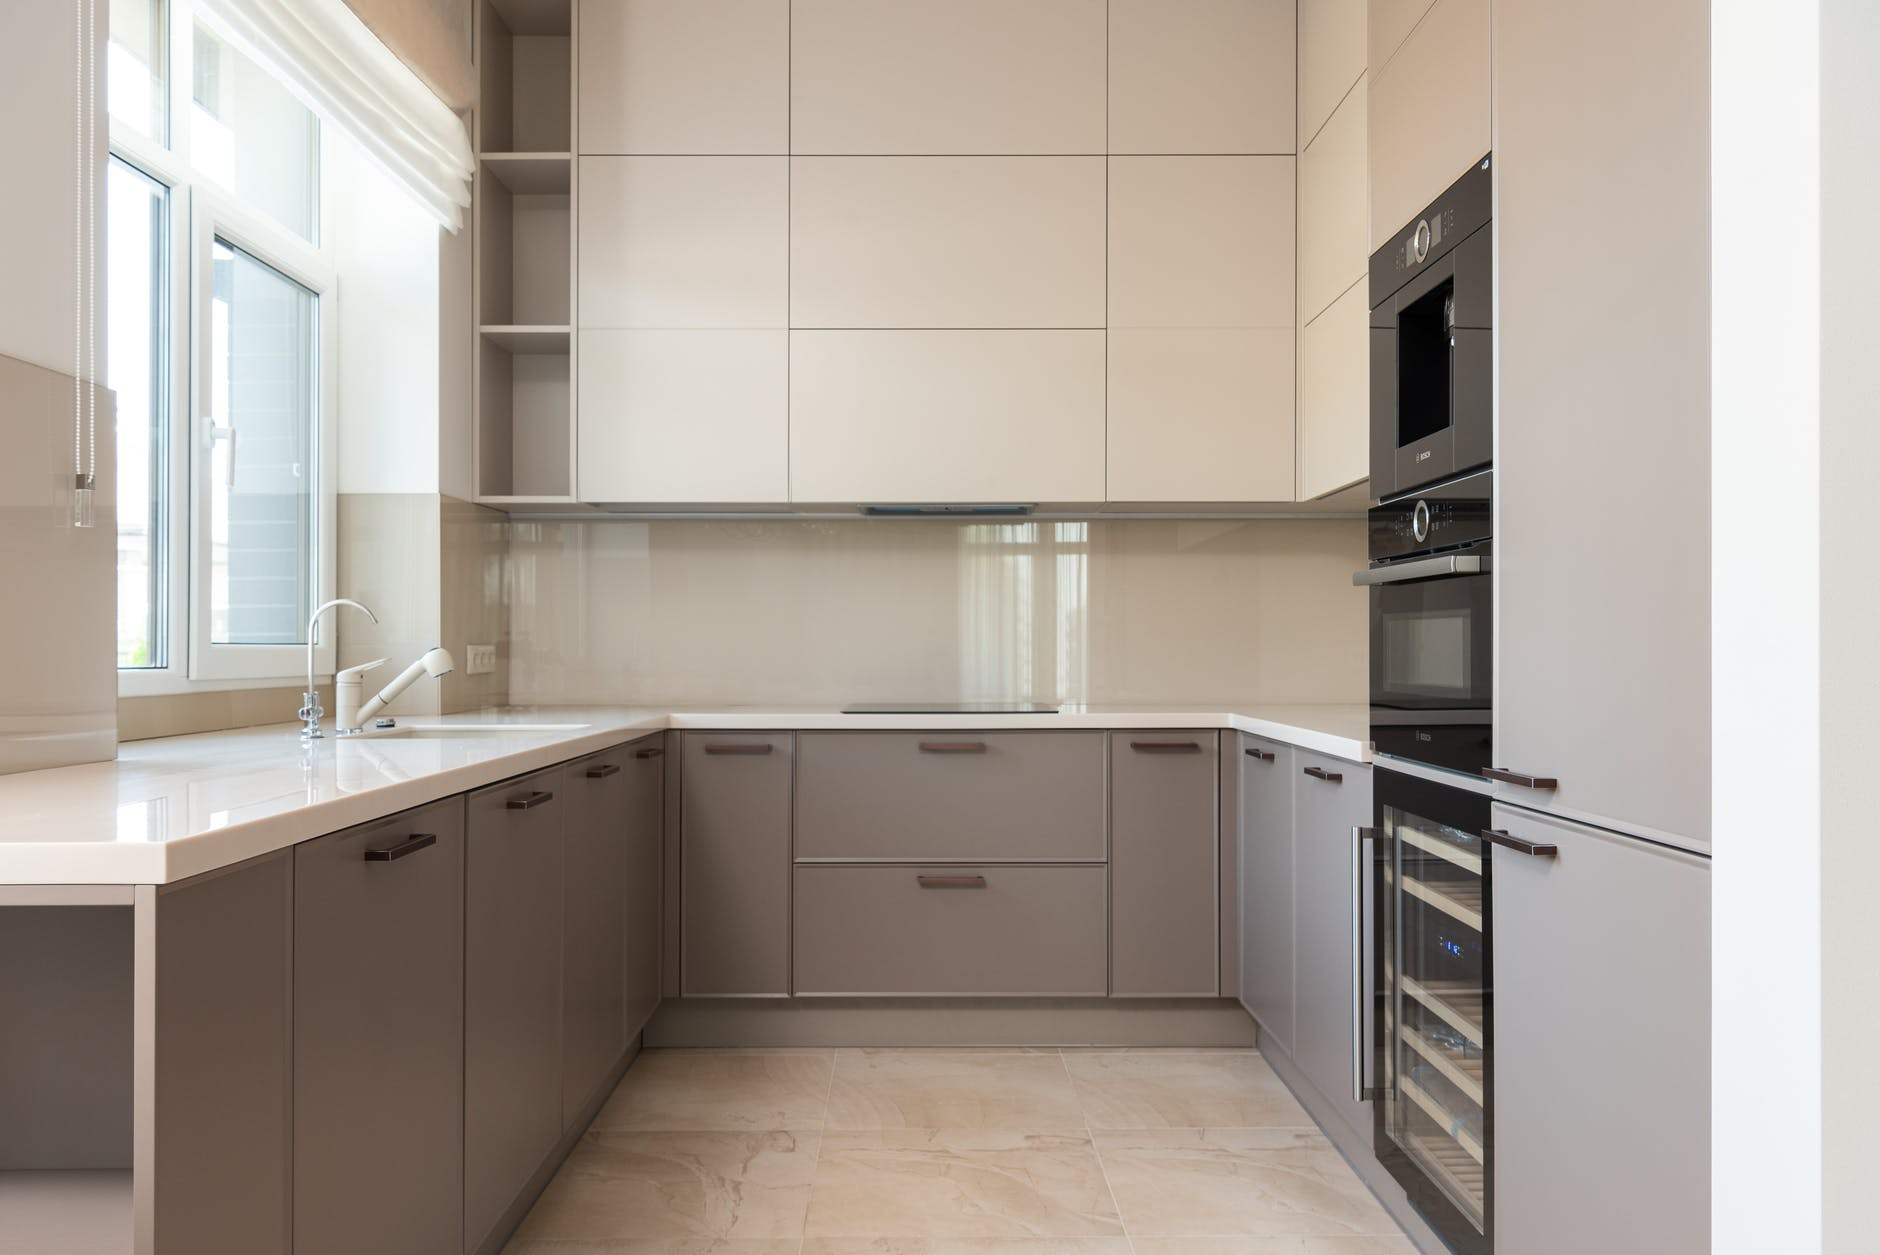 Selecting-the-Right-Cabinet-Hardware